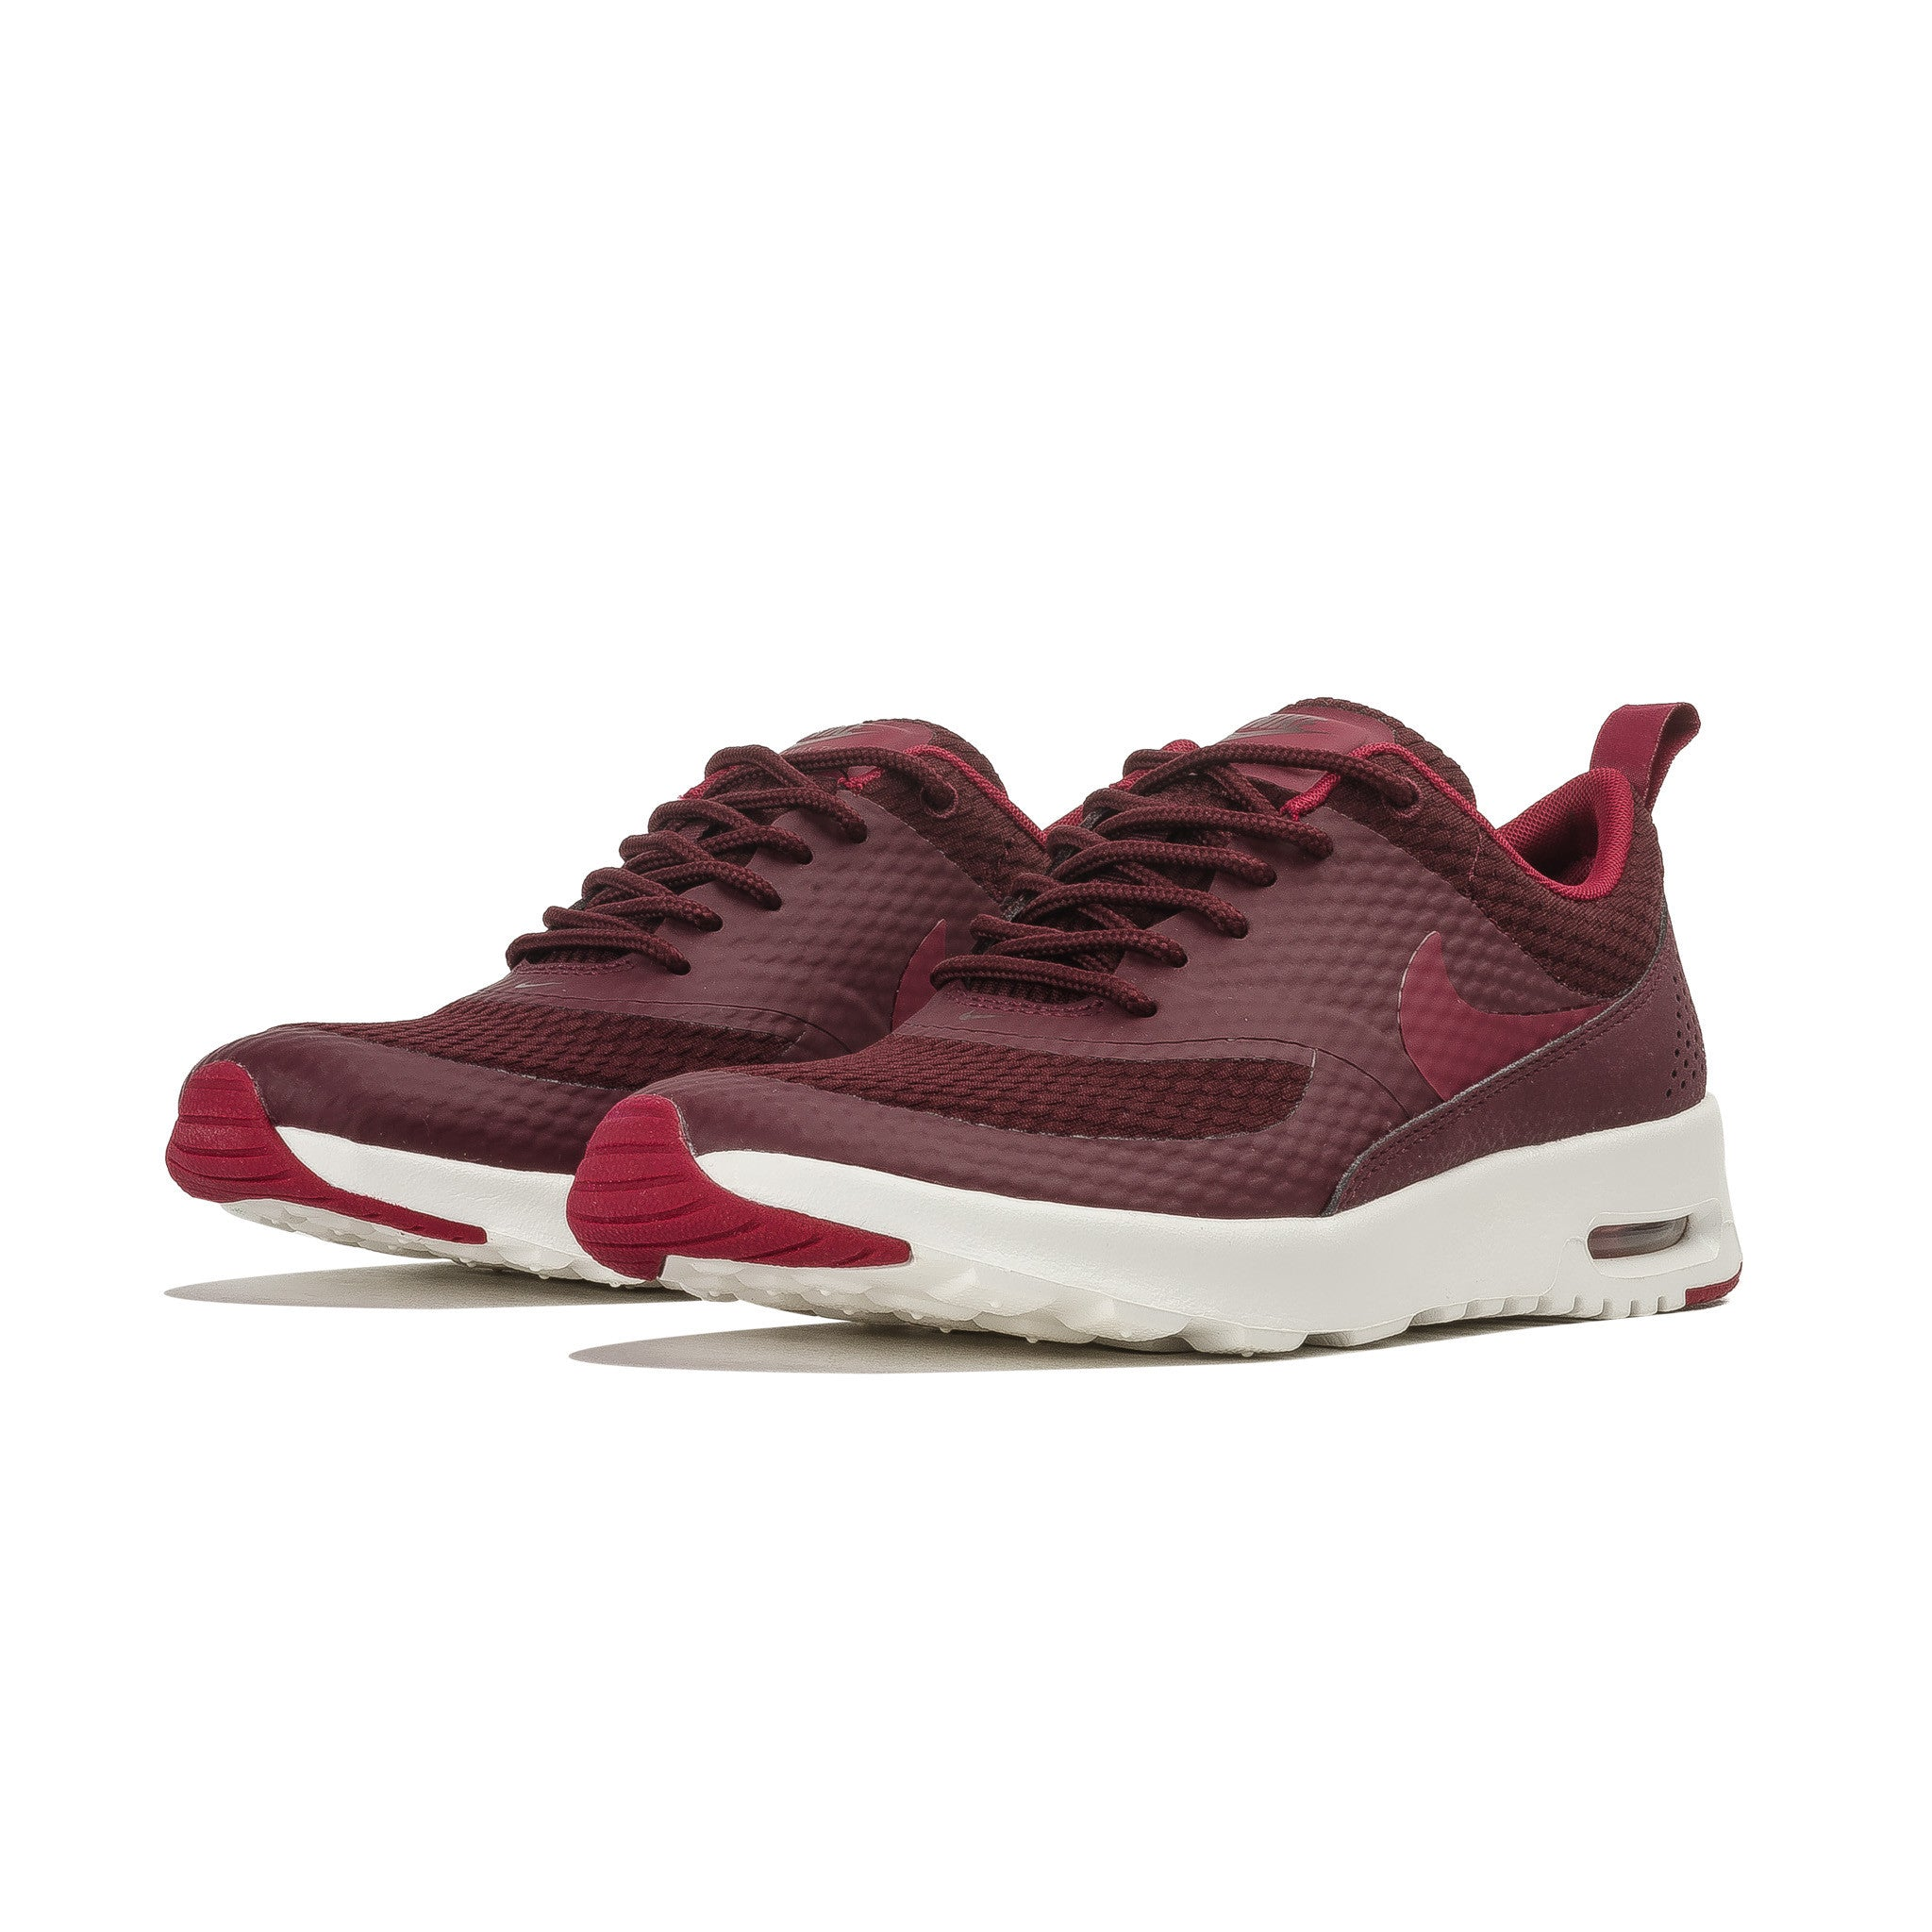 W Air Max Thea TXT 819639-600